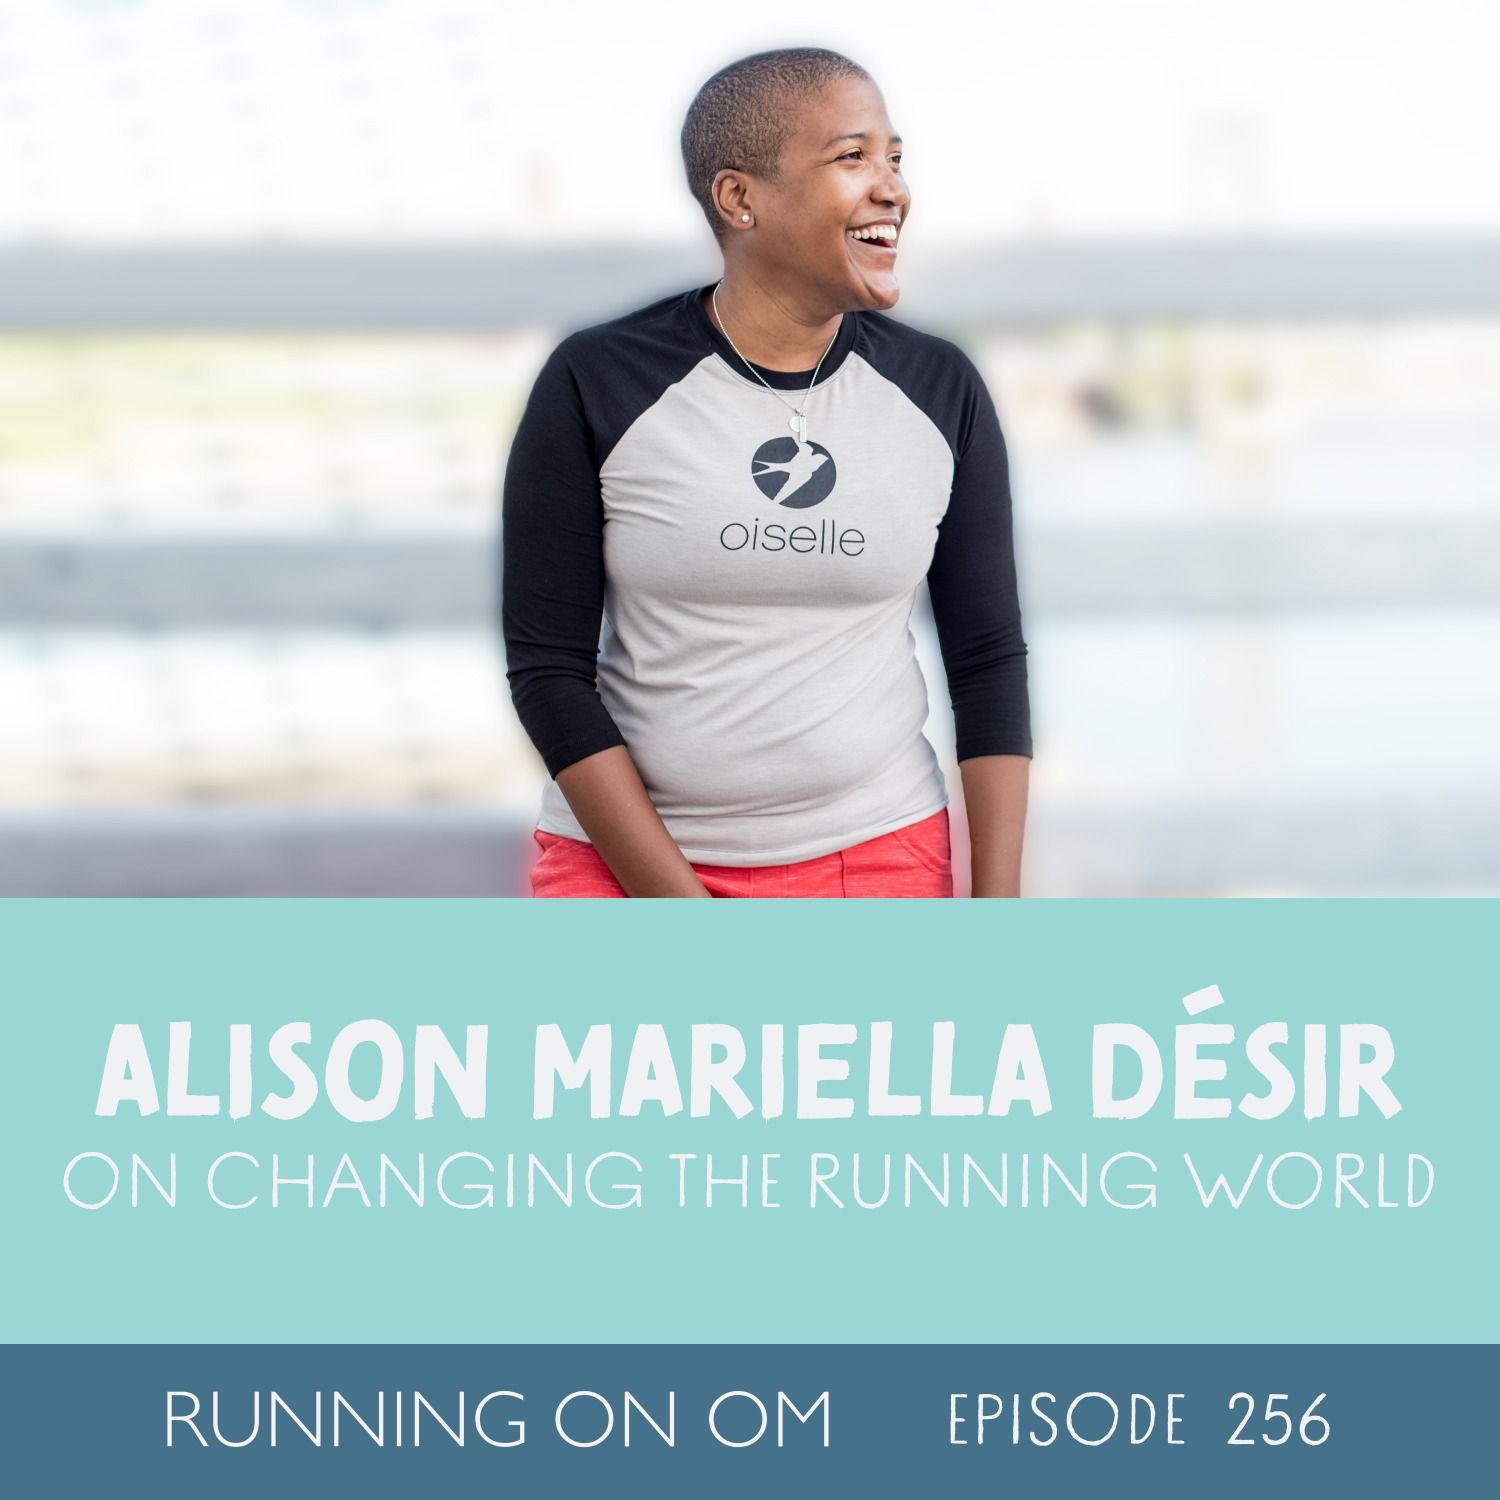 Alison Mariella Désir on Changing the Running World